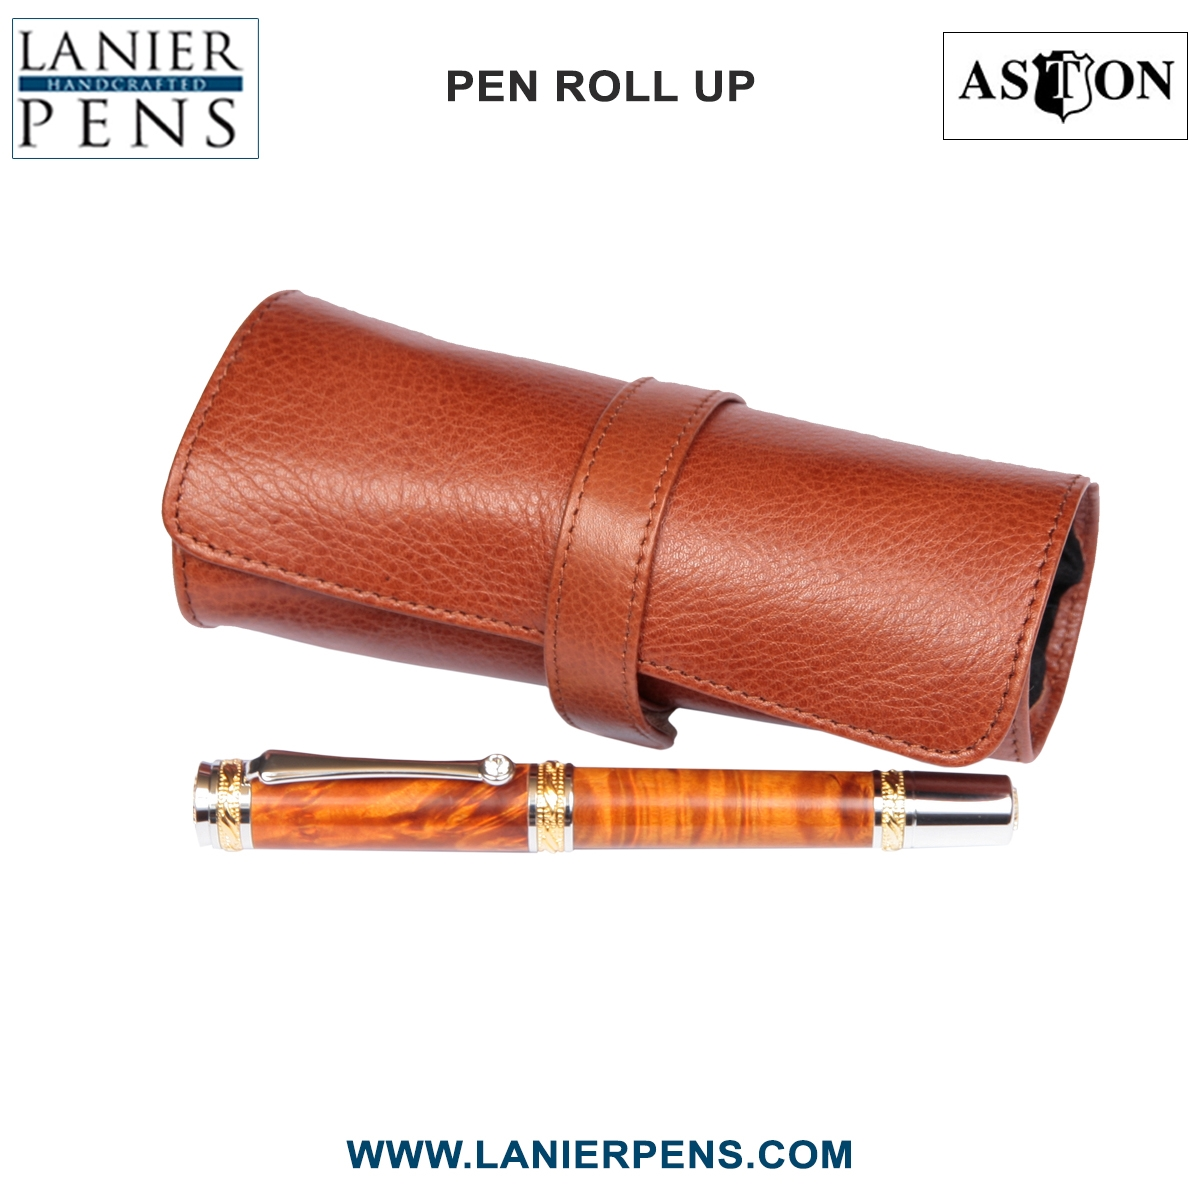 Aston Leather Roll Up Pen Case Luggage Accessory - 5 Pen Holder Roll Up Tan Case